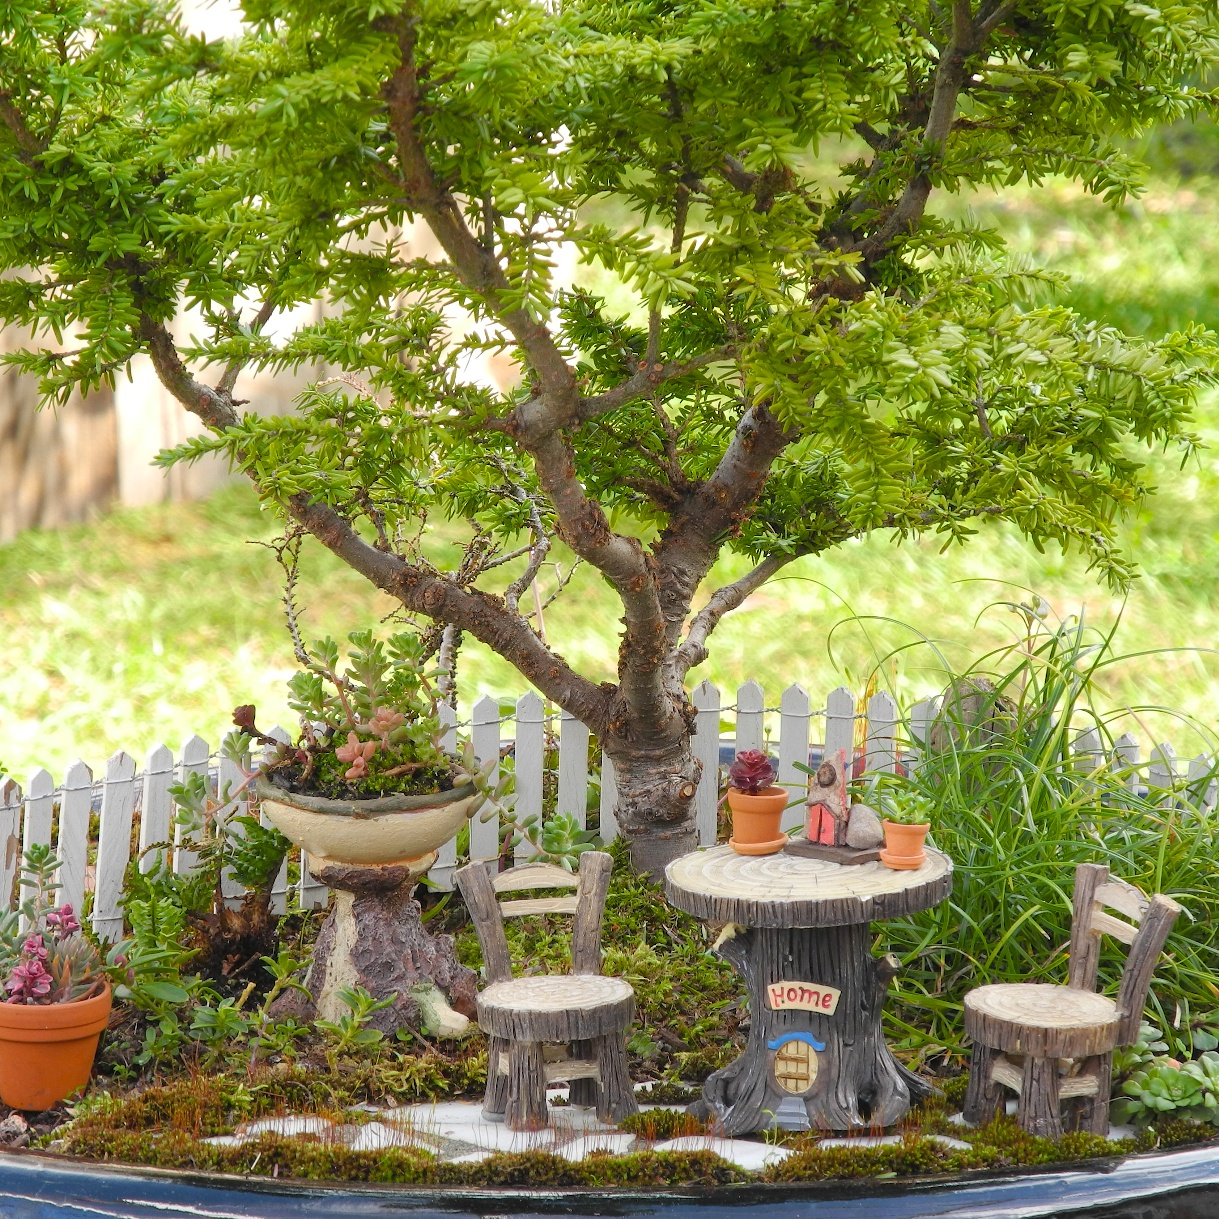 Edible Landscaping And Fairy Gardens: 1001 + Ideas For Cute And Whimsical Fairy Garden Ideas